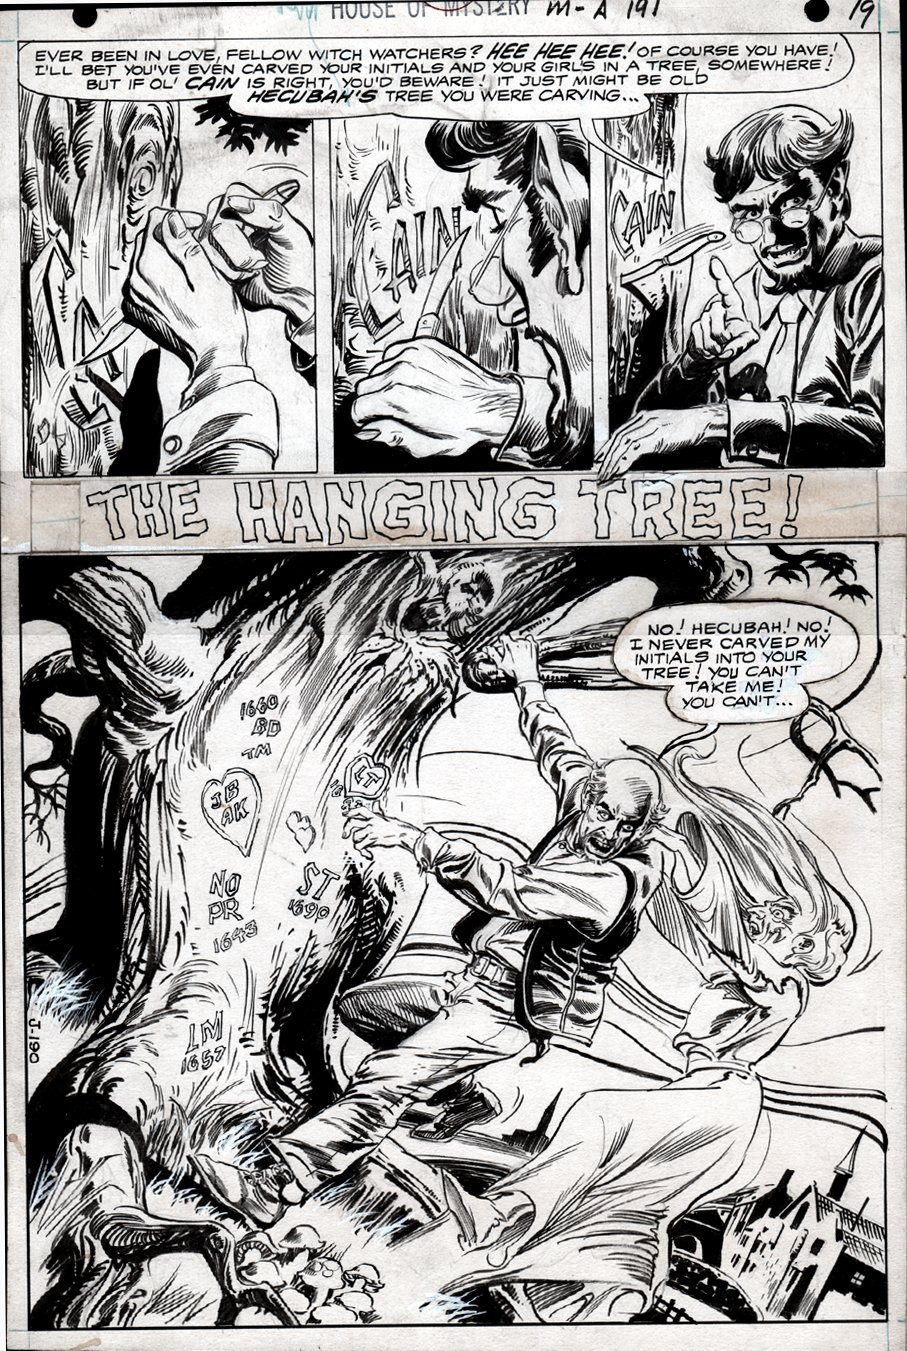 House of Mystery #191 p 1 SPLASH (FULL PENCILED SPLASH UNDER PUBLISHED SPLASH!) 1970